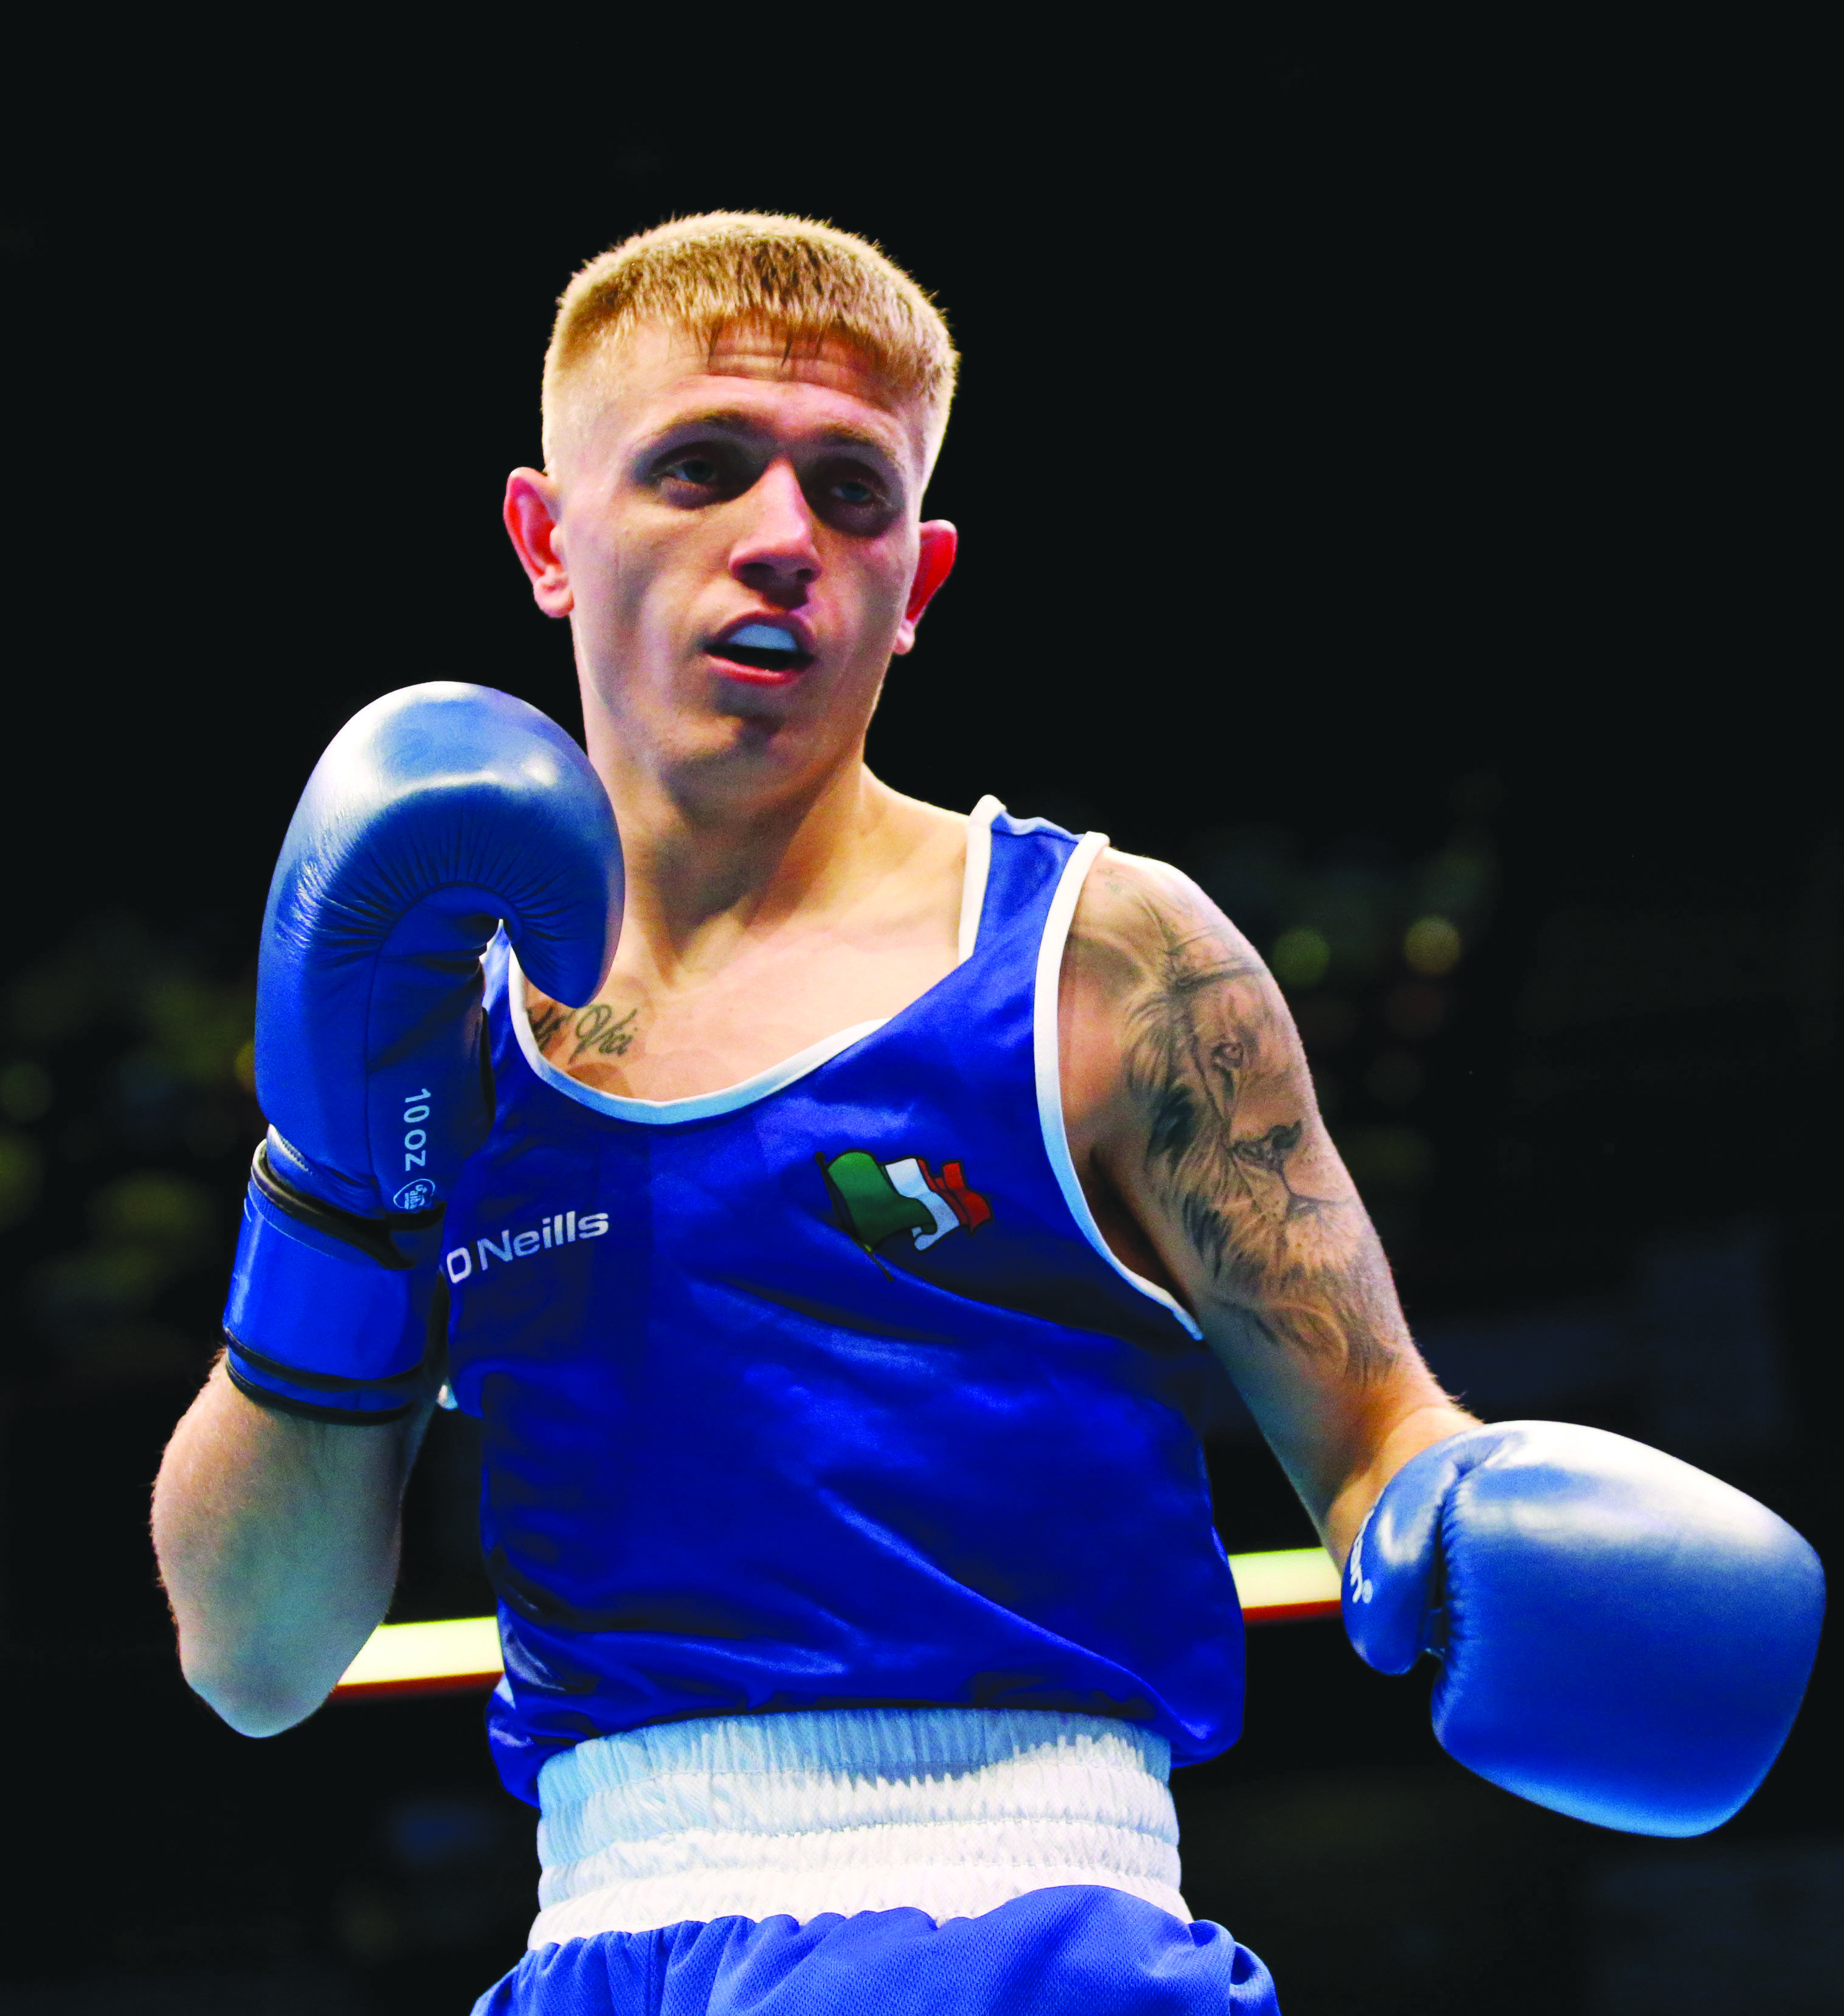 Kurt Walker has helped Ireland's boxers get ready for the 2012 and 2016 Games, but now it's his time to star at the greatest show on earth